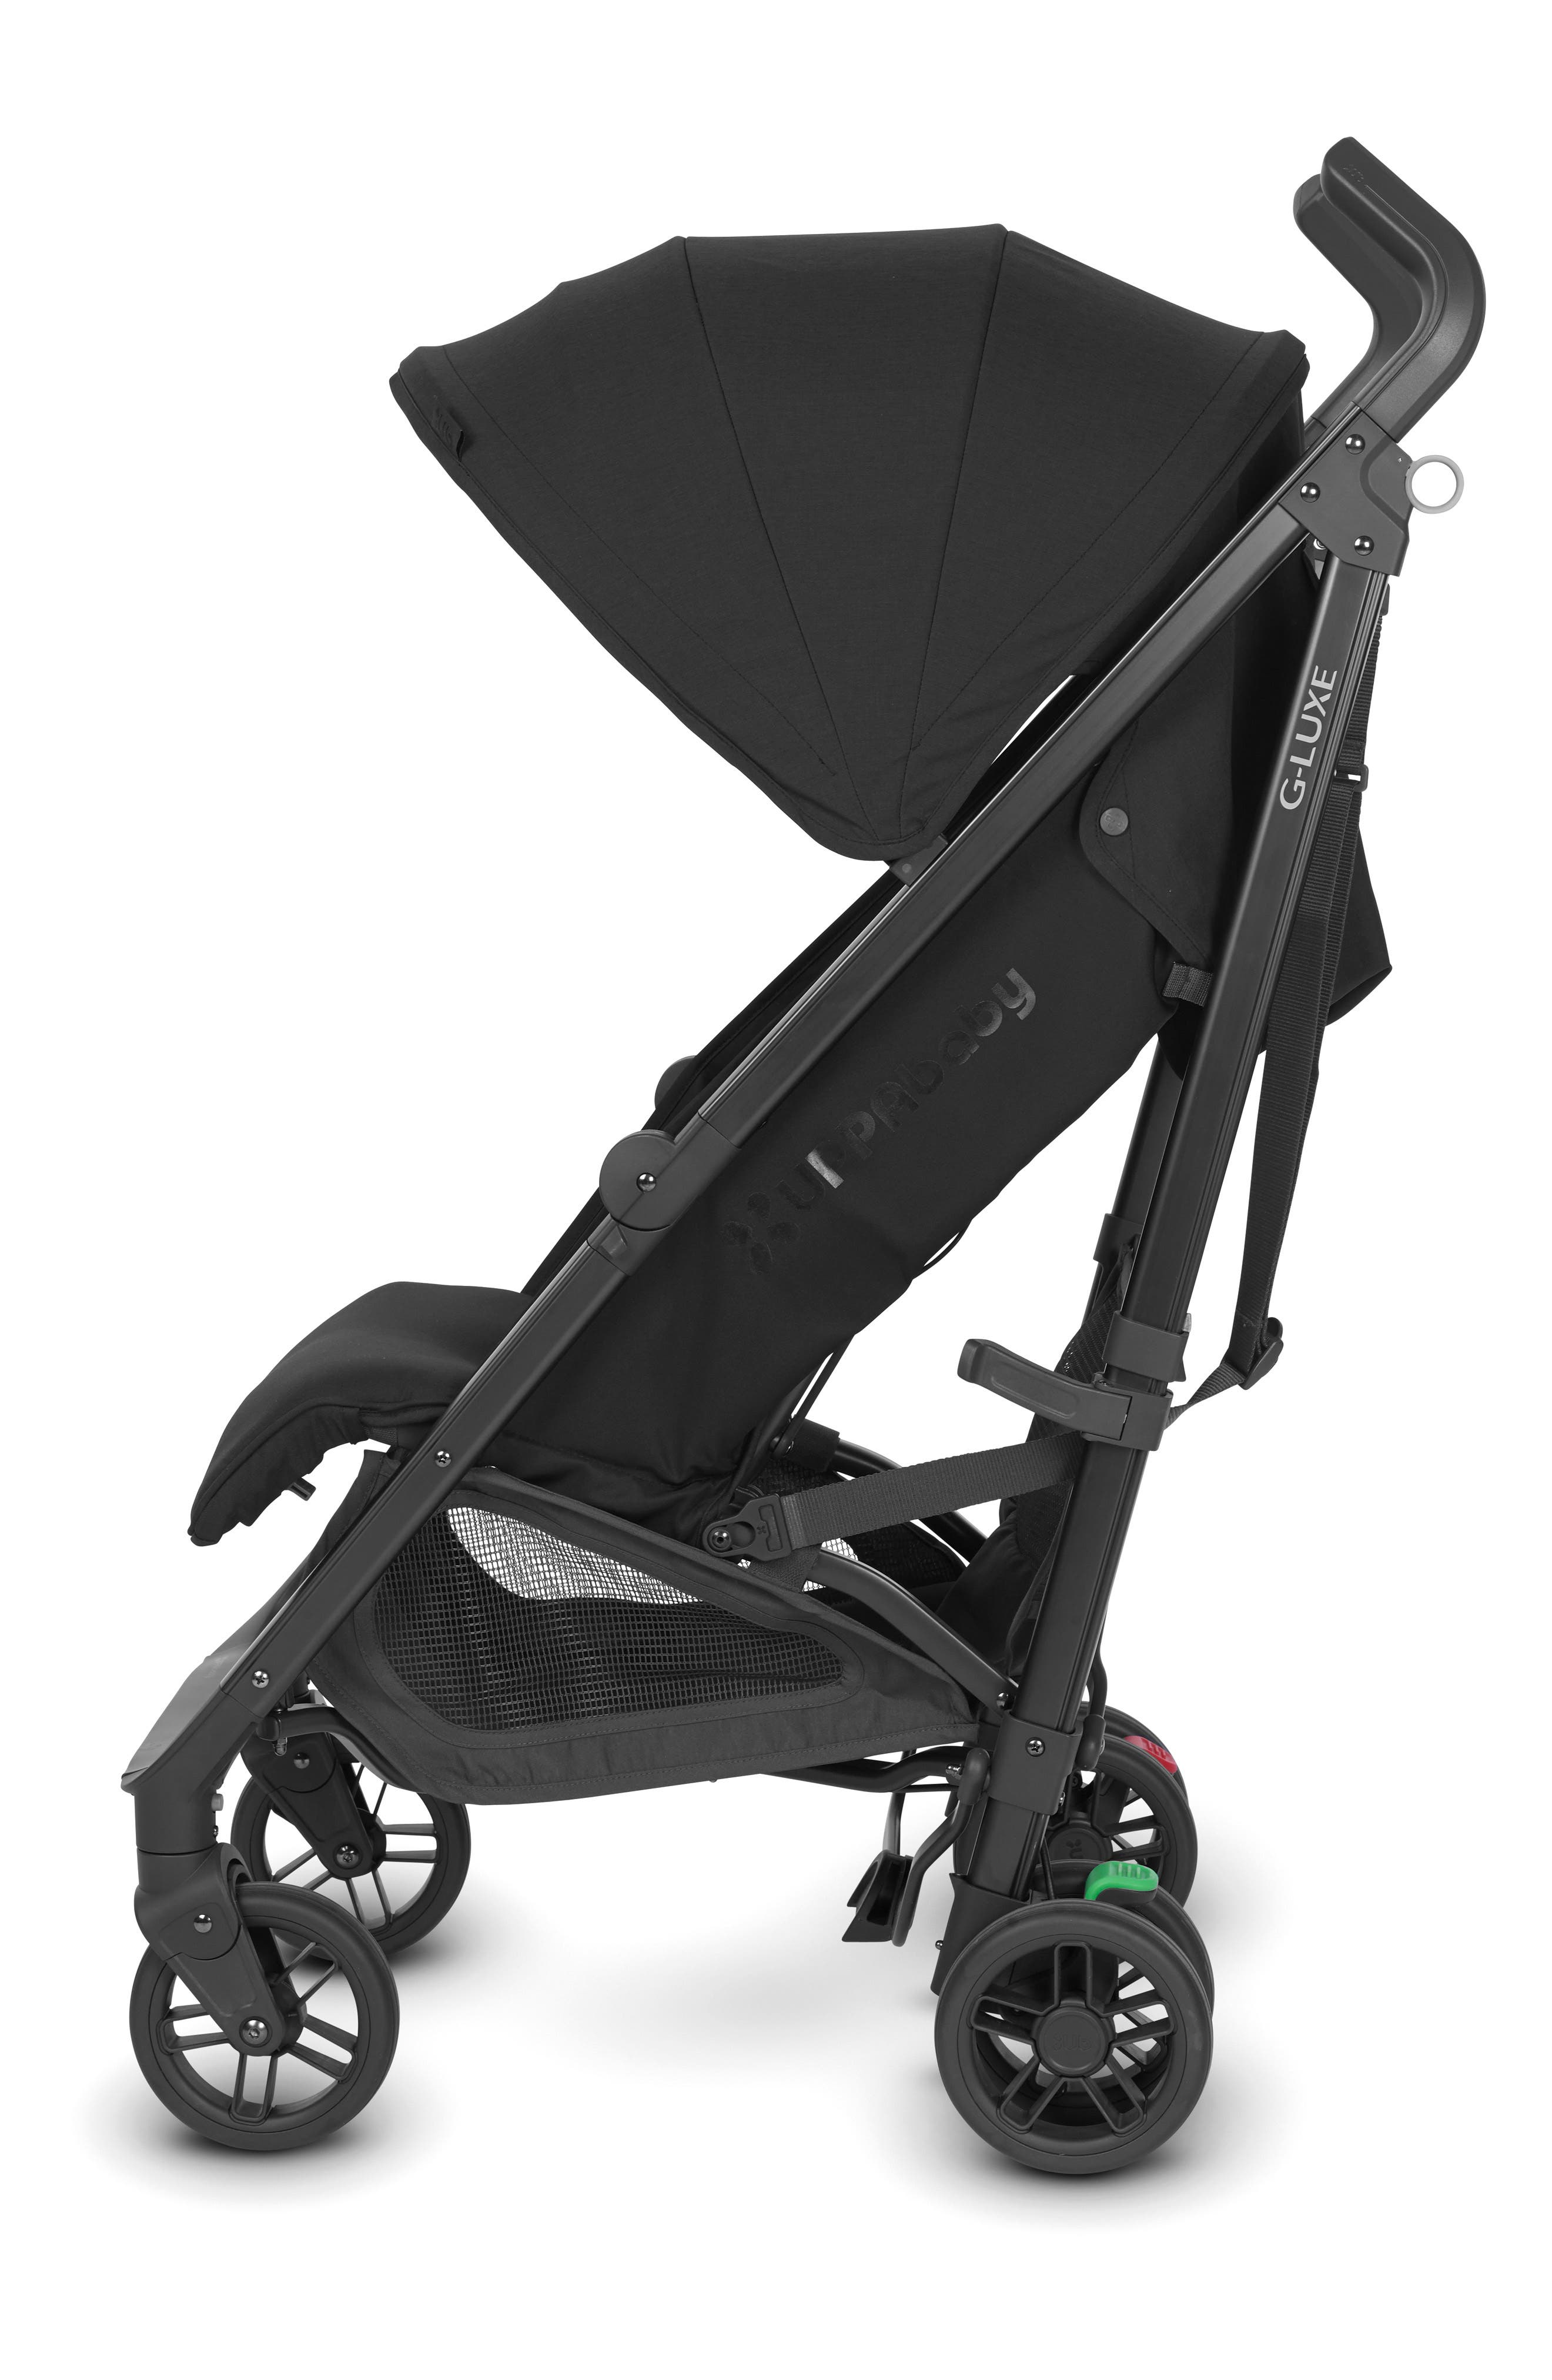 G-LUXE 2018 Reclining Umbrella Stroller,                             Alternate thumbnail 2, color,                             JAKE BLACK/ CARBON